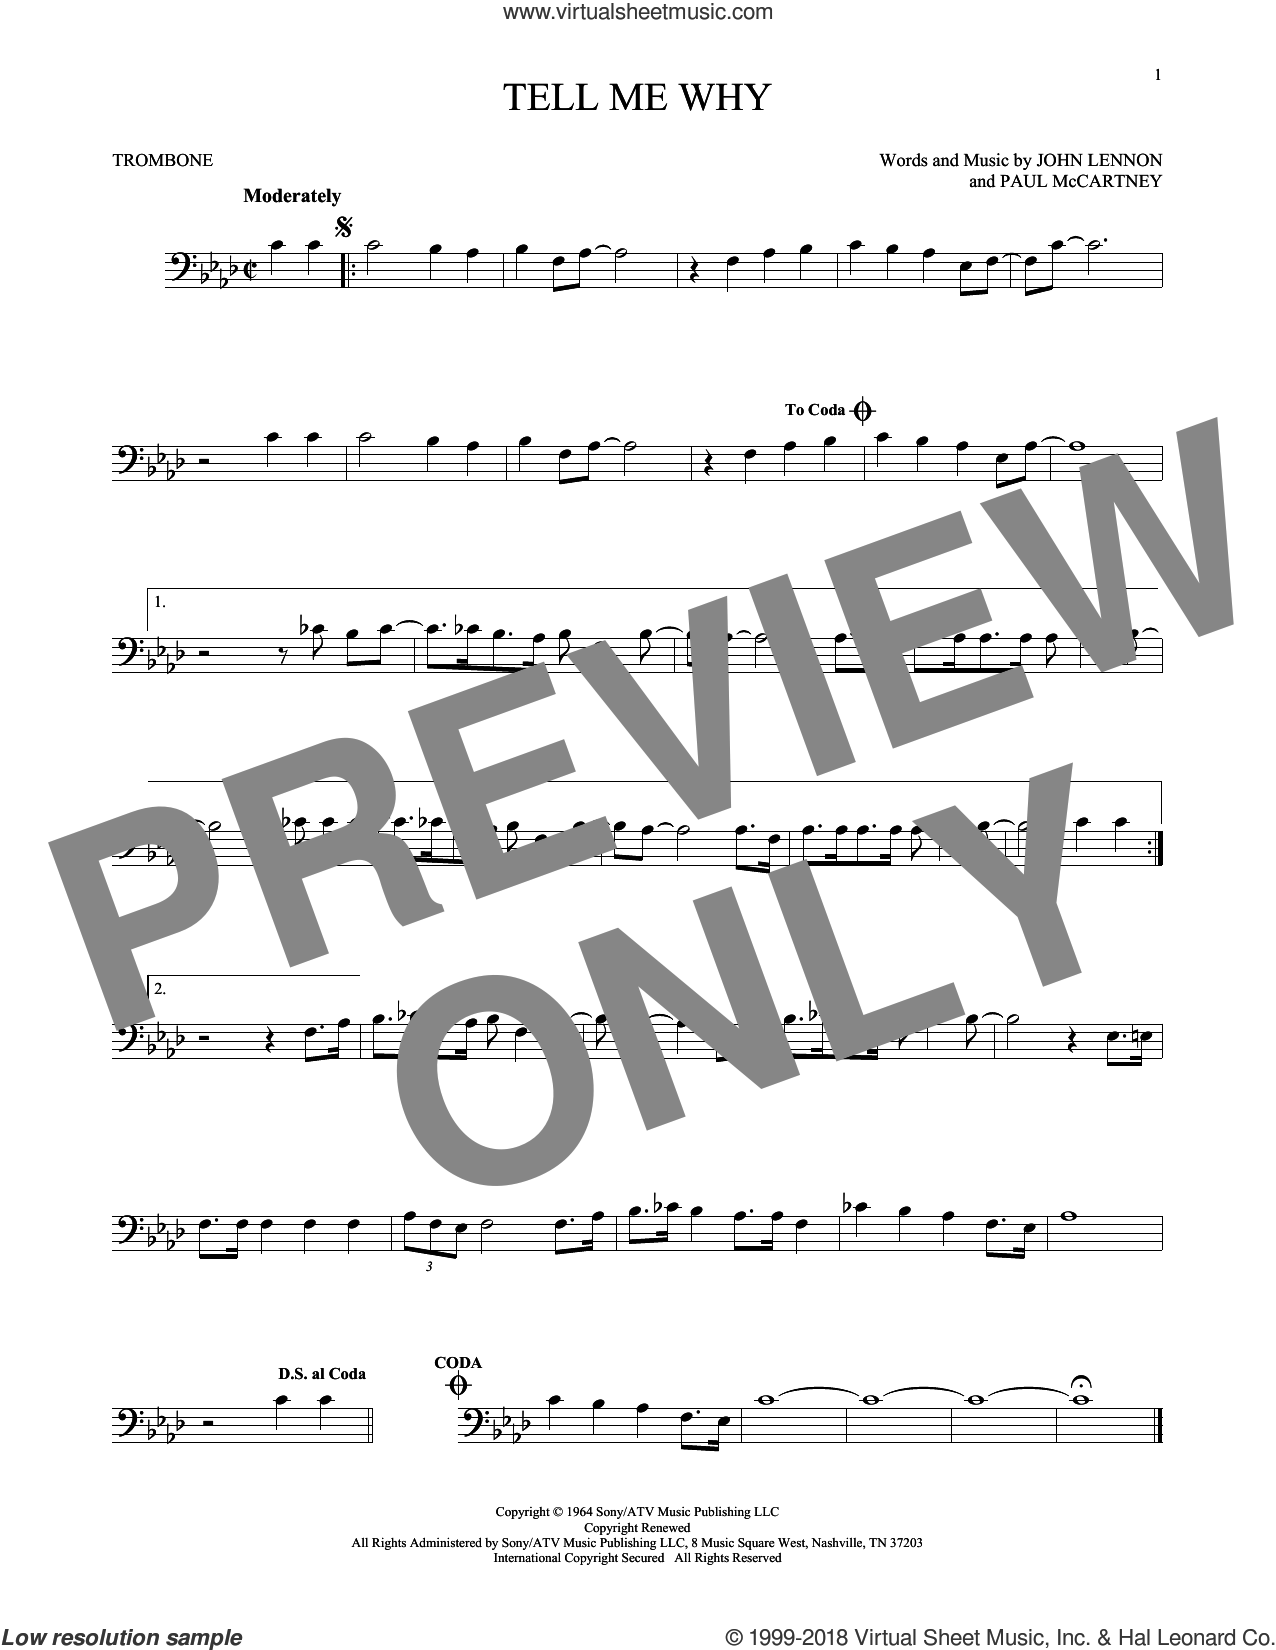 Tell Me Why sheet music for trombone solo by The Beatles, John Lennon and Paul McCartney. Score Image Preview.